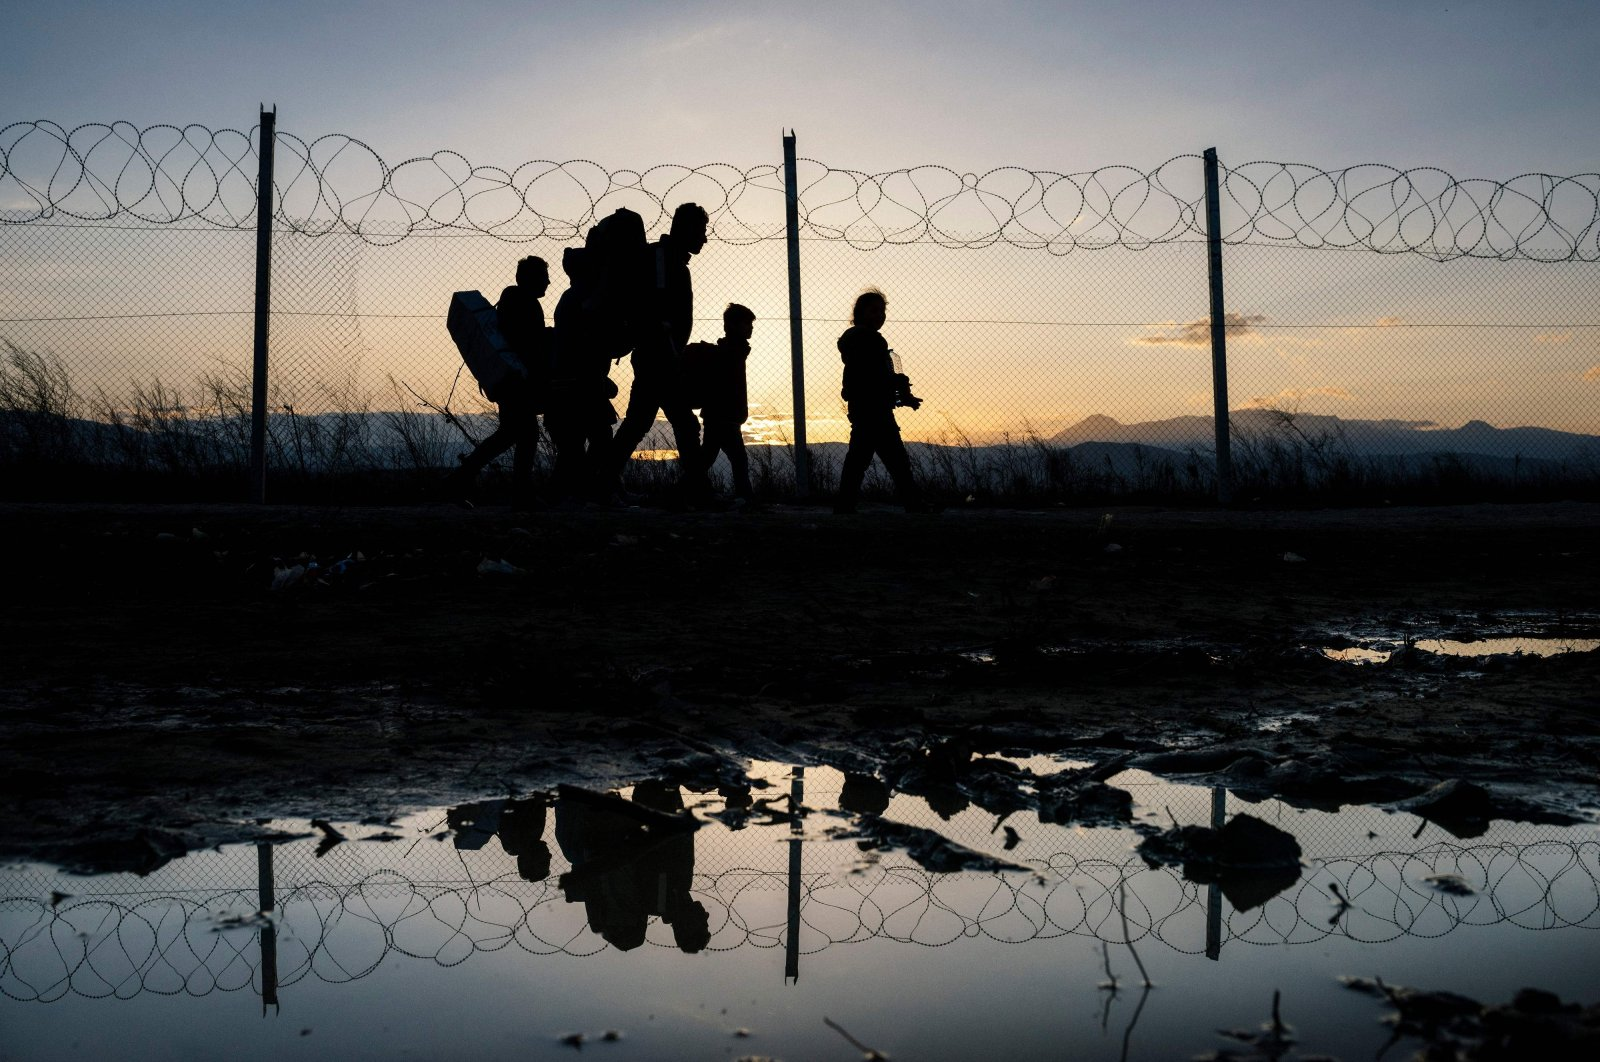 In this file photo, refugees walk to a registration camp after crossing the  Greek-Macedonian border, near the town of Gevgelija, after Macedonia allowed around 250 migrants to cross its border with Greece, as 10,000 more were left waiting in miserable conditions, March 2, 2016. (AFP Photo)